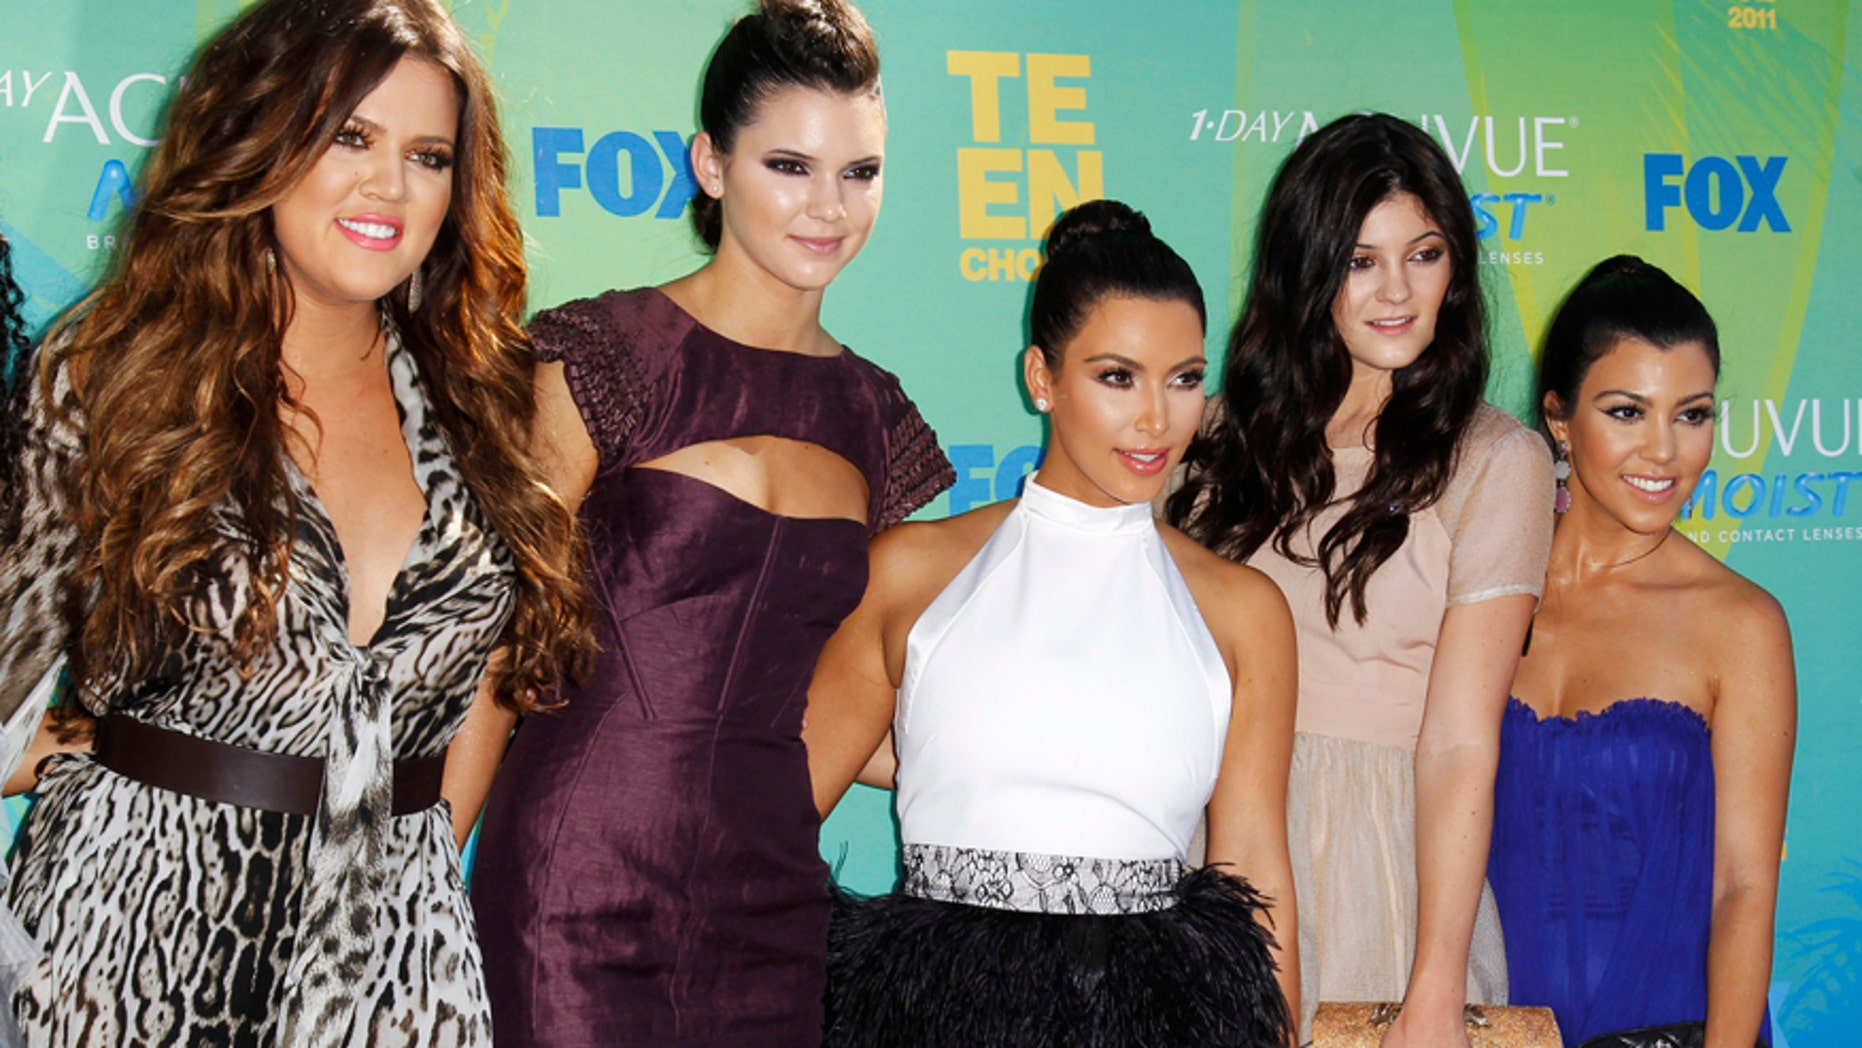 Kendall (2nd L) and Kylie Jenner (2nd R) pose with their sisters Khloe Kardashian (L), Kim Kardashian (C) and Kourtney Kardashian at the Teen Choice Awards in Los Angeles August 7, 2011.